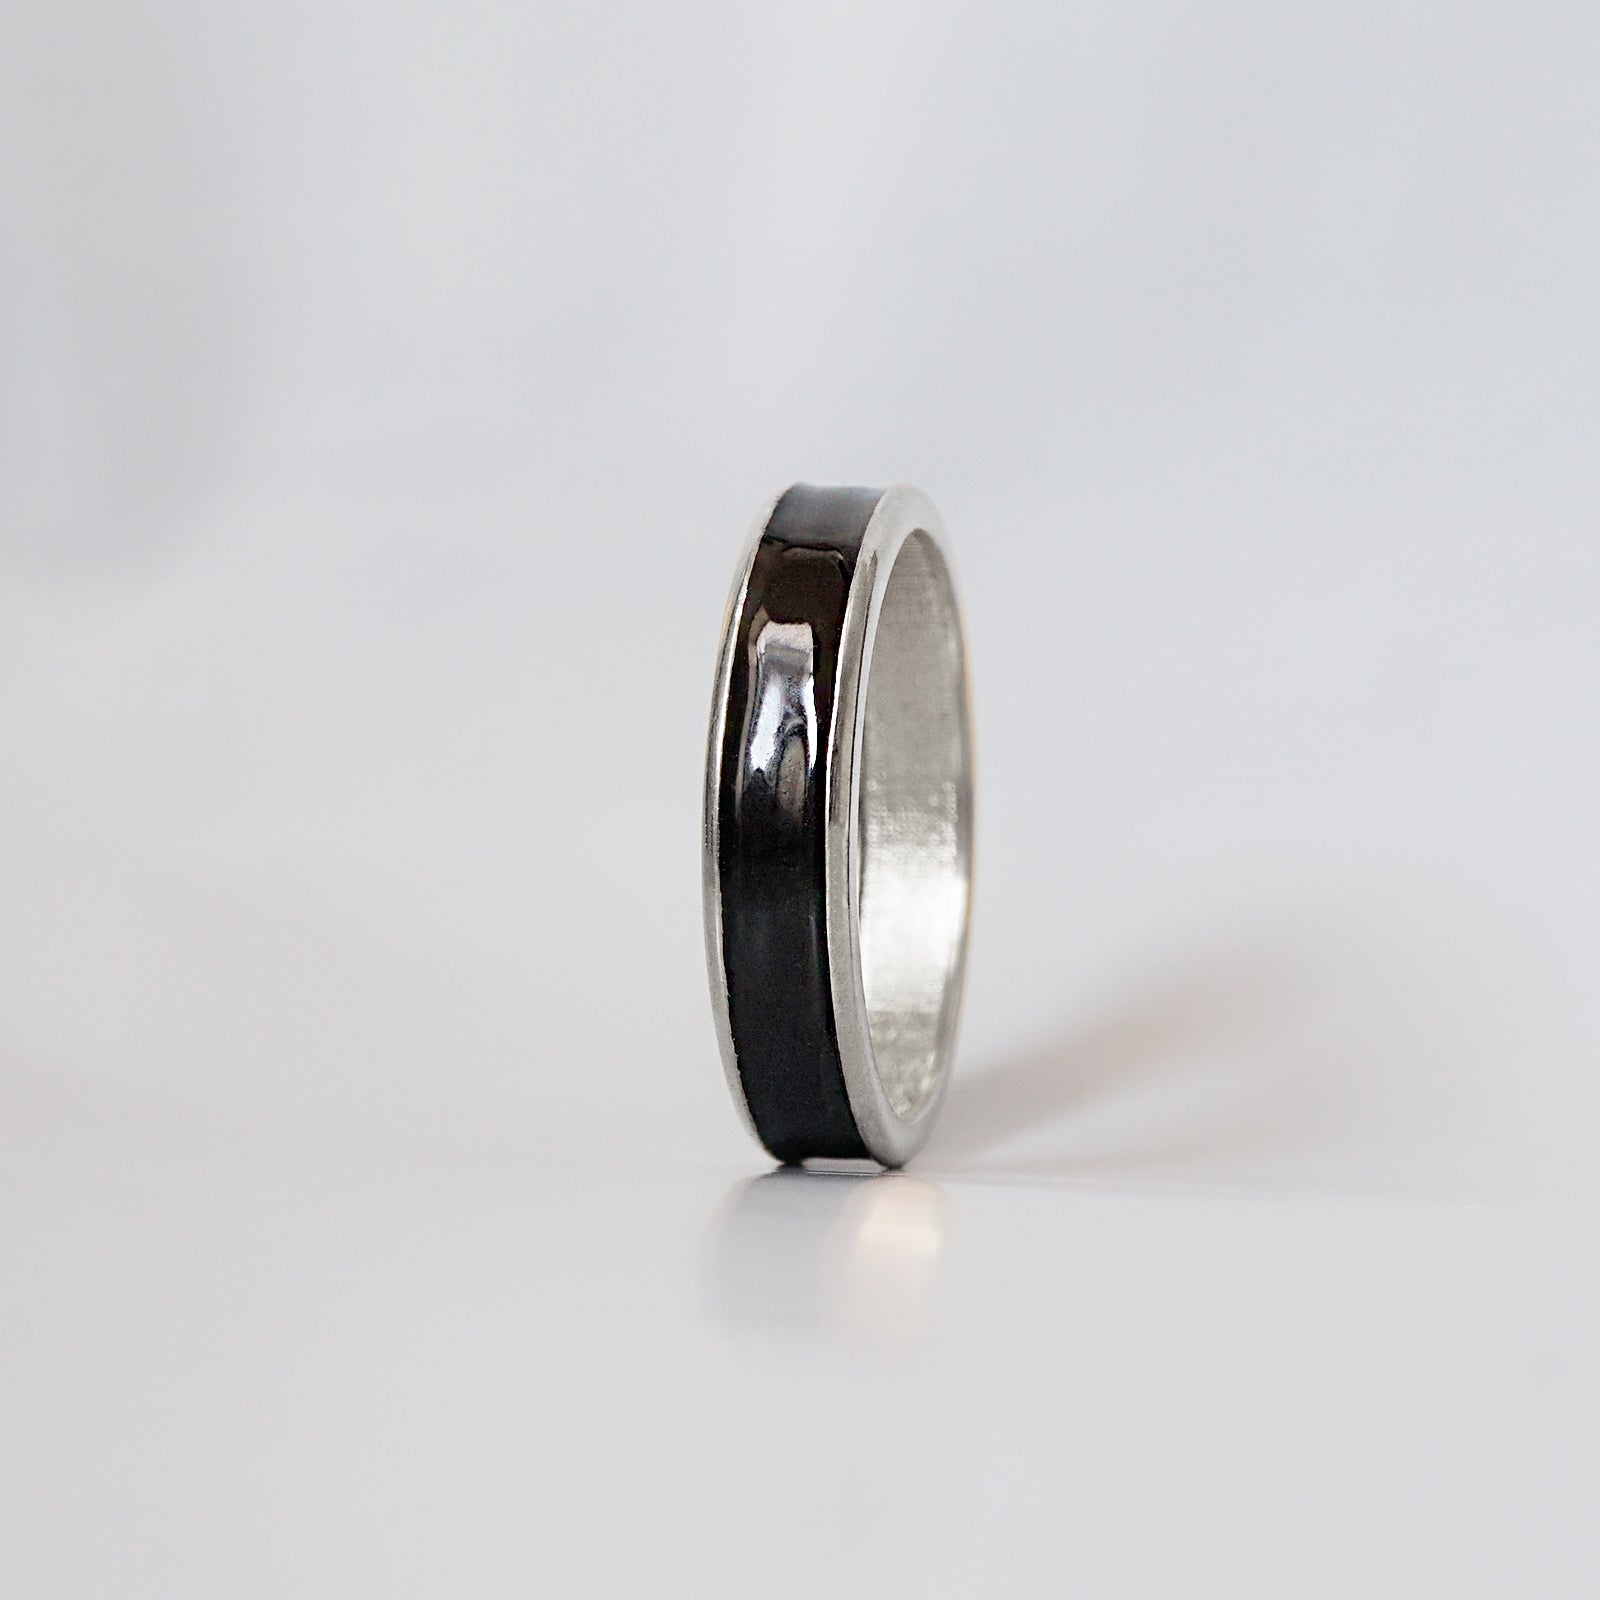 Enamel Ring Band, 4.8mm - Tippy Taste Jewelry